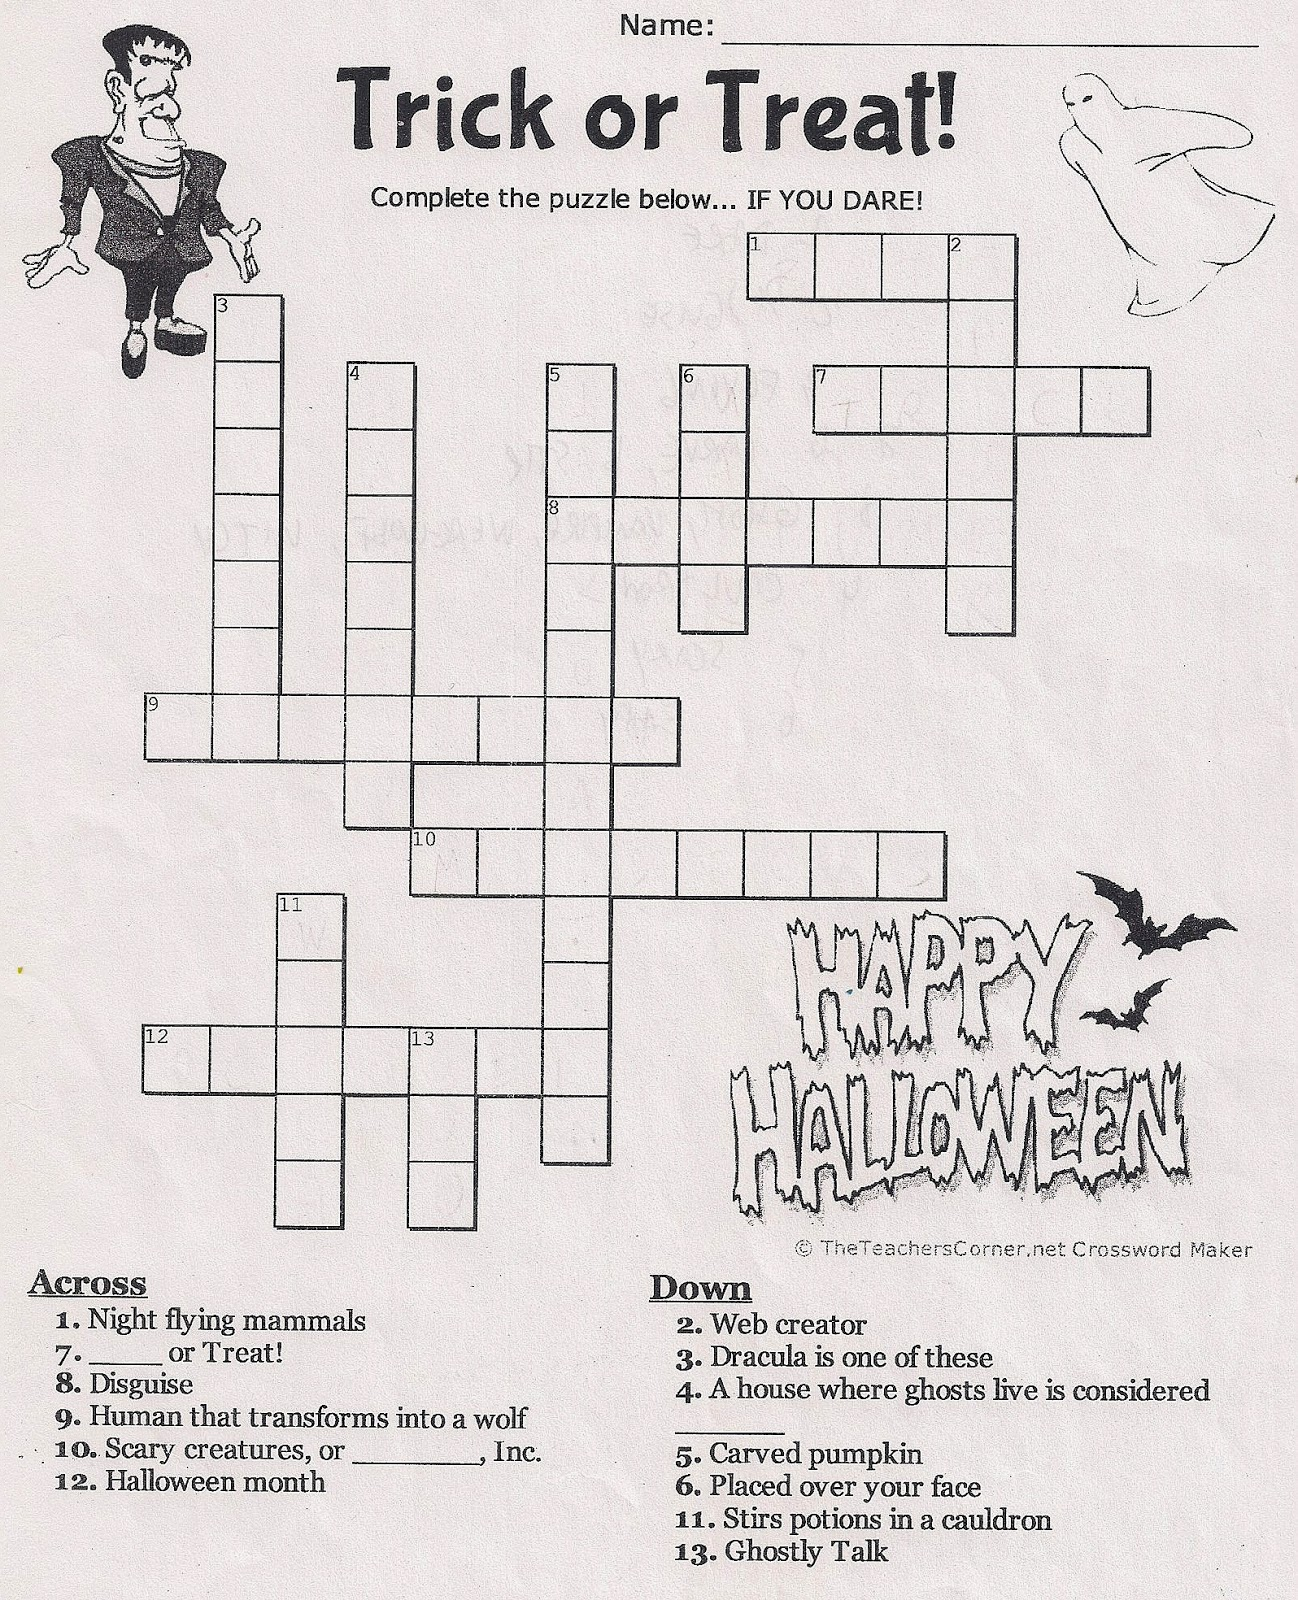 ENGLISH-Christine Picasso: SCHOOL ACTIVITIES ON HALLOWEEN